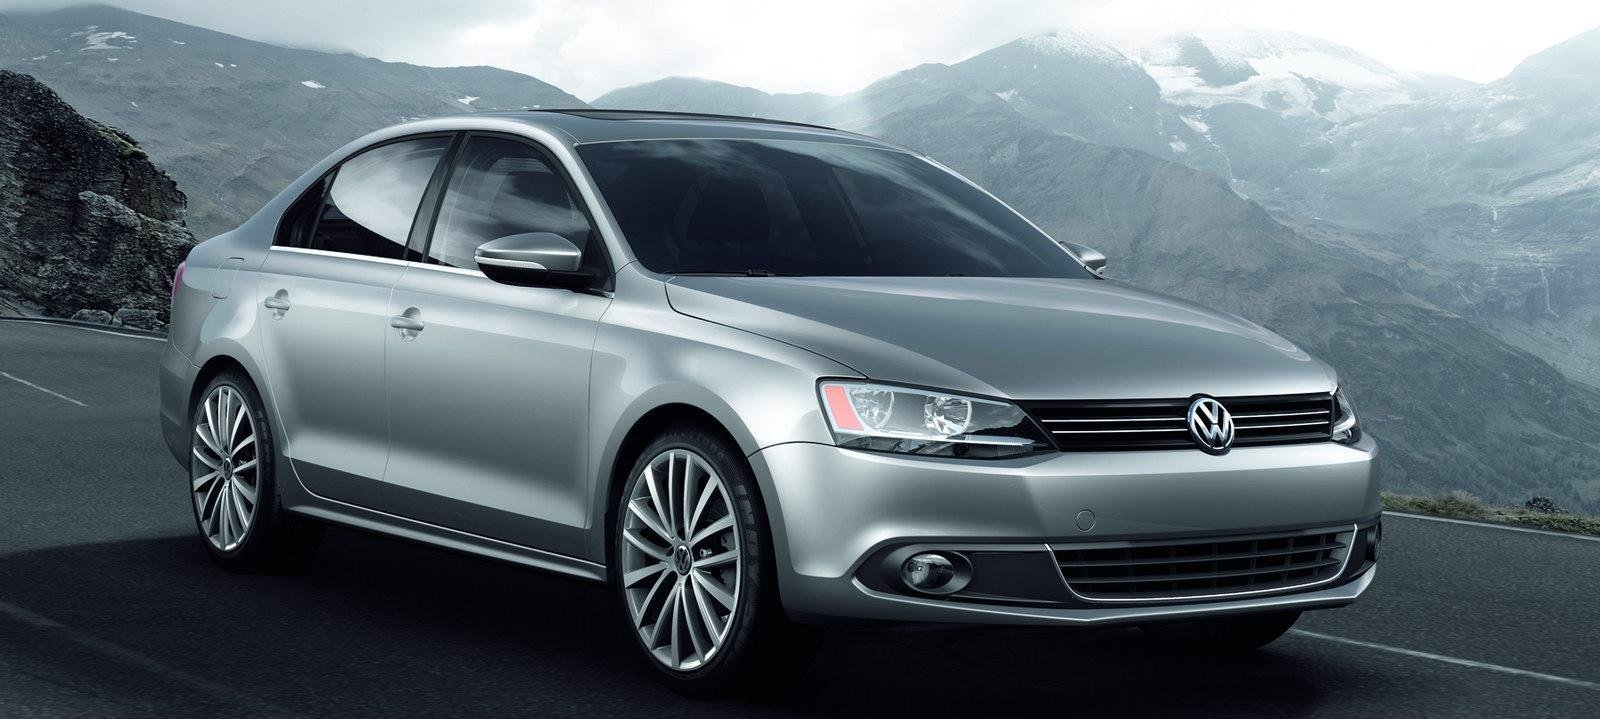 2011 Volkswagen Jetta Review - Top Speed